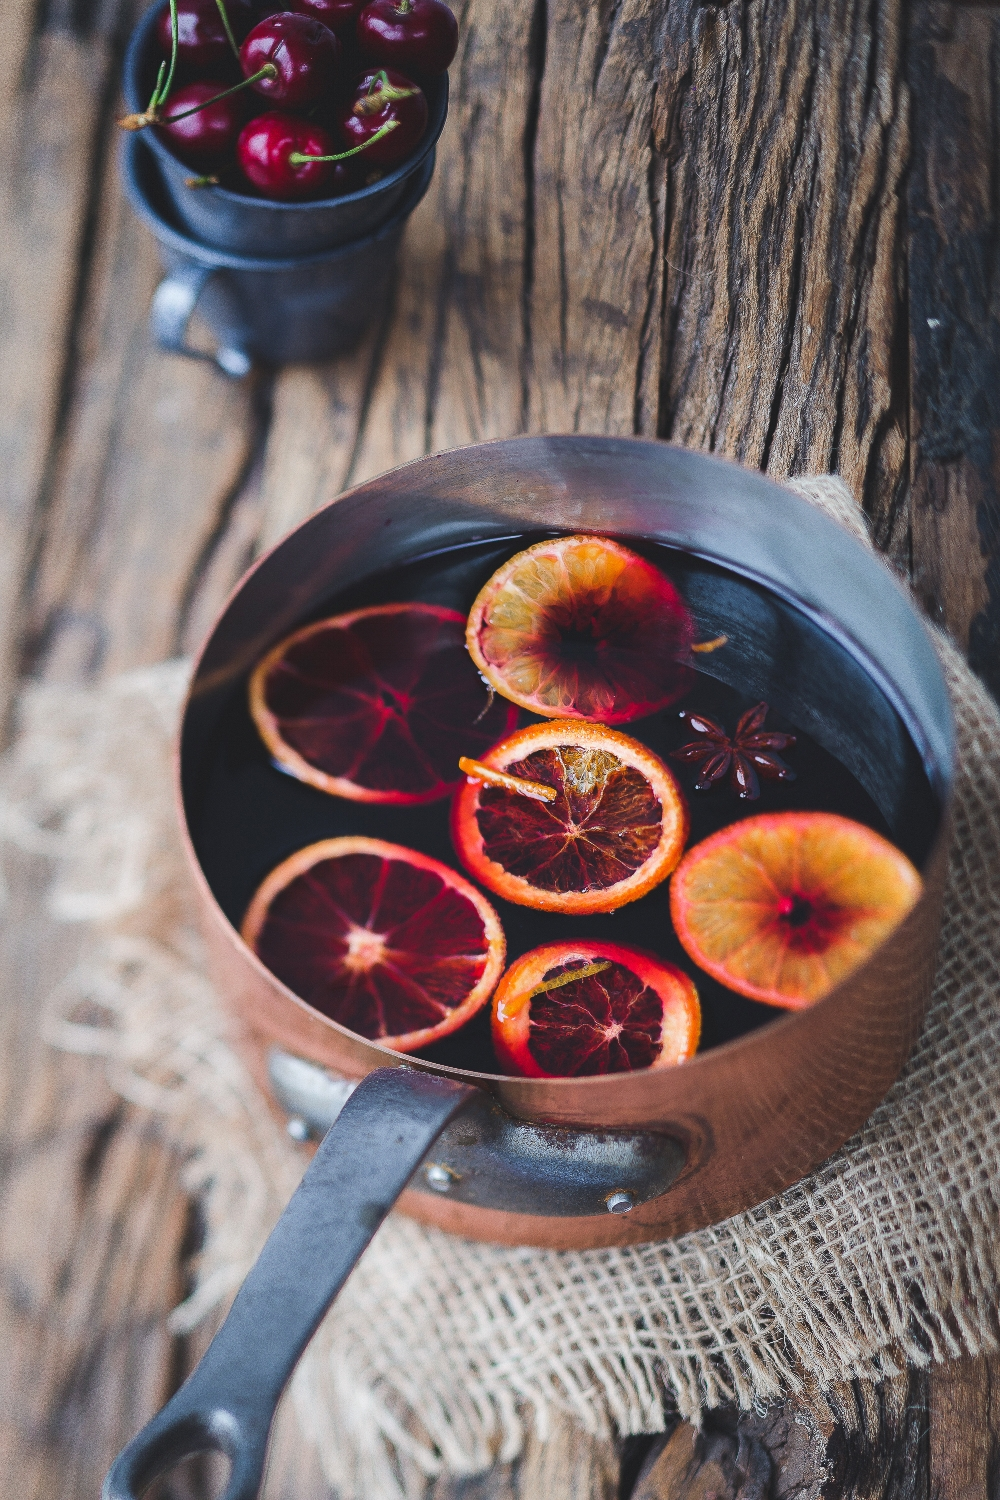 Orange slices atop mulled wine in a copper pot on a wooden table top.